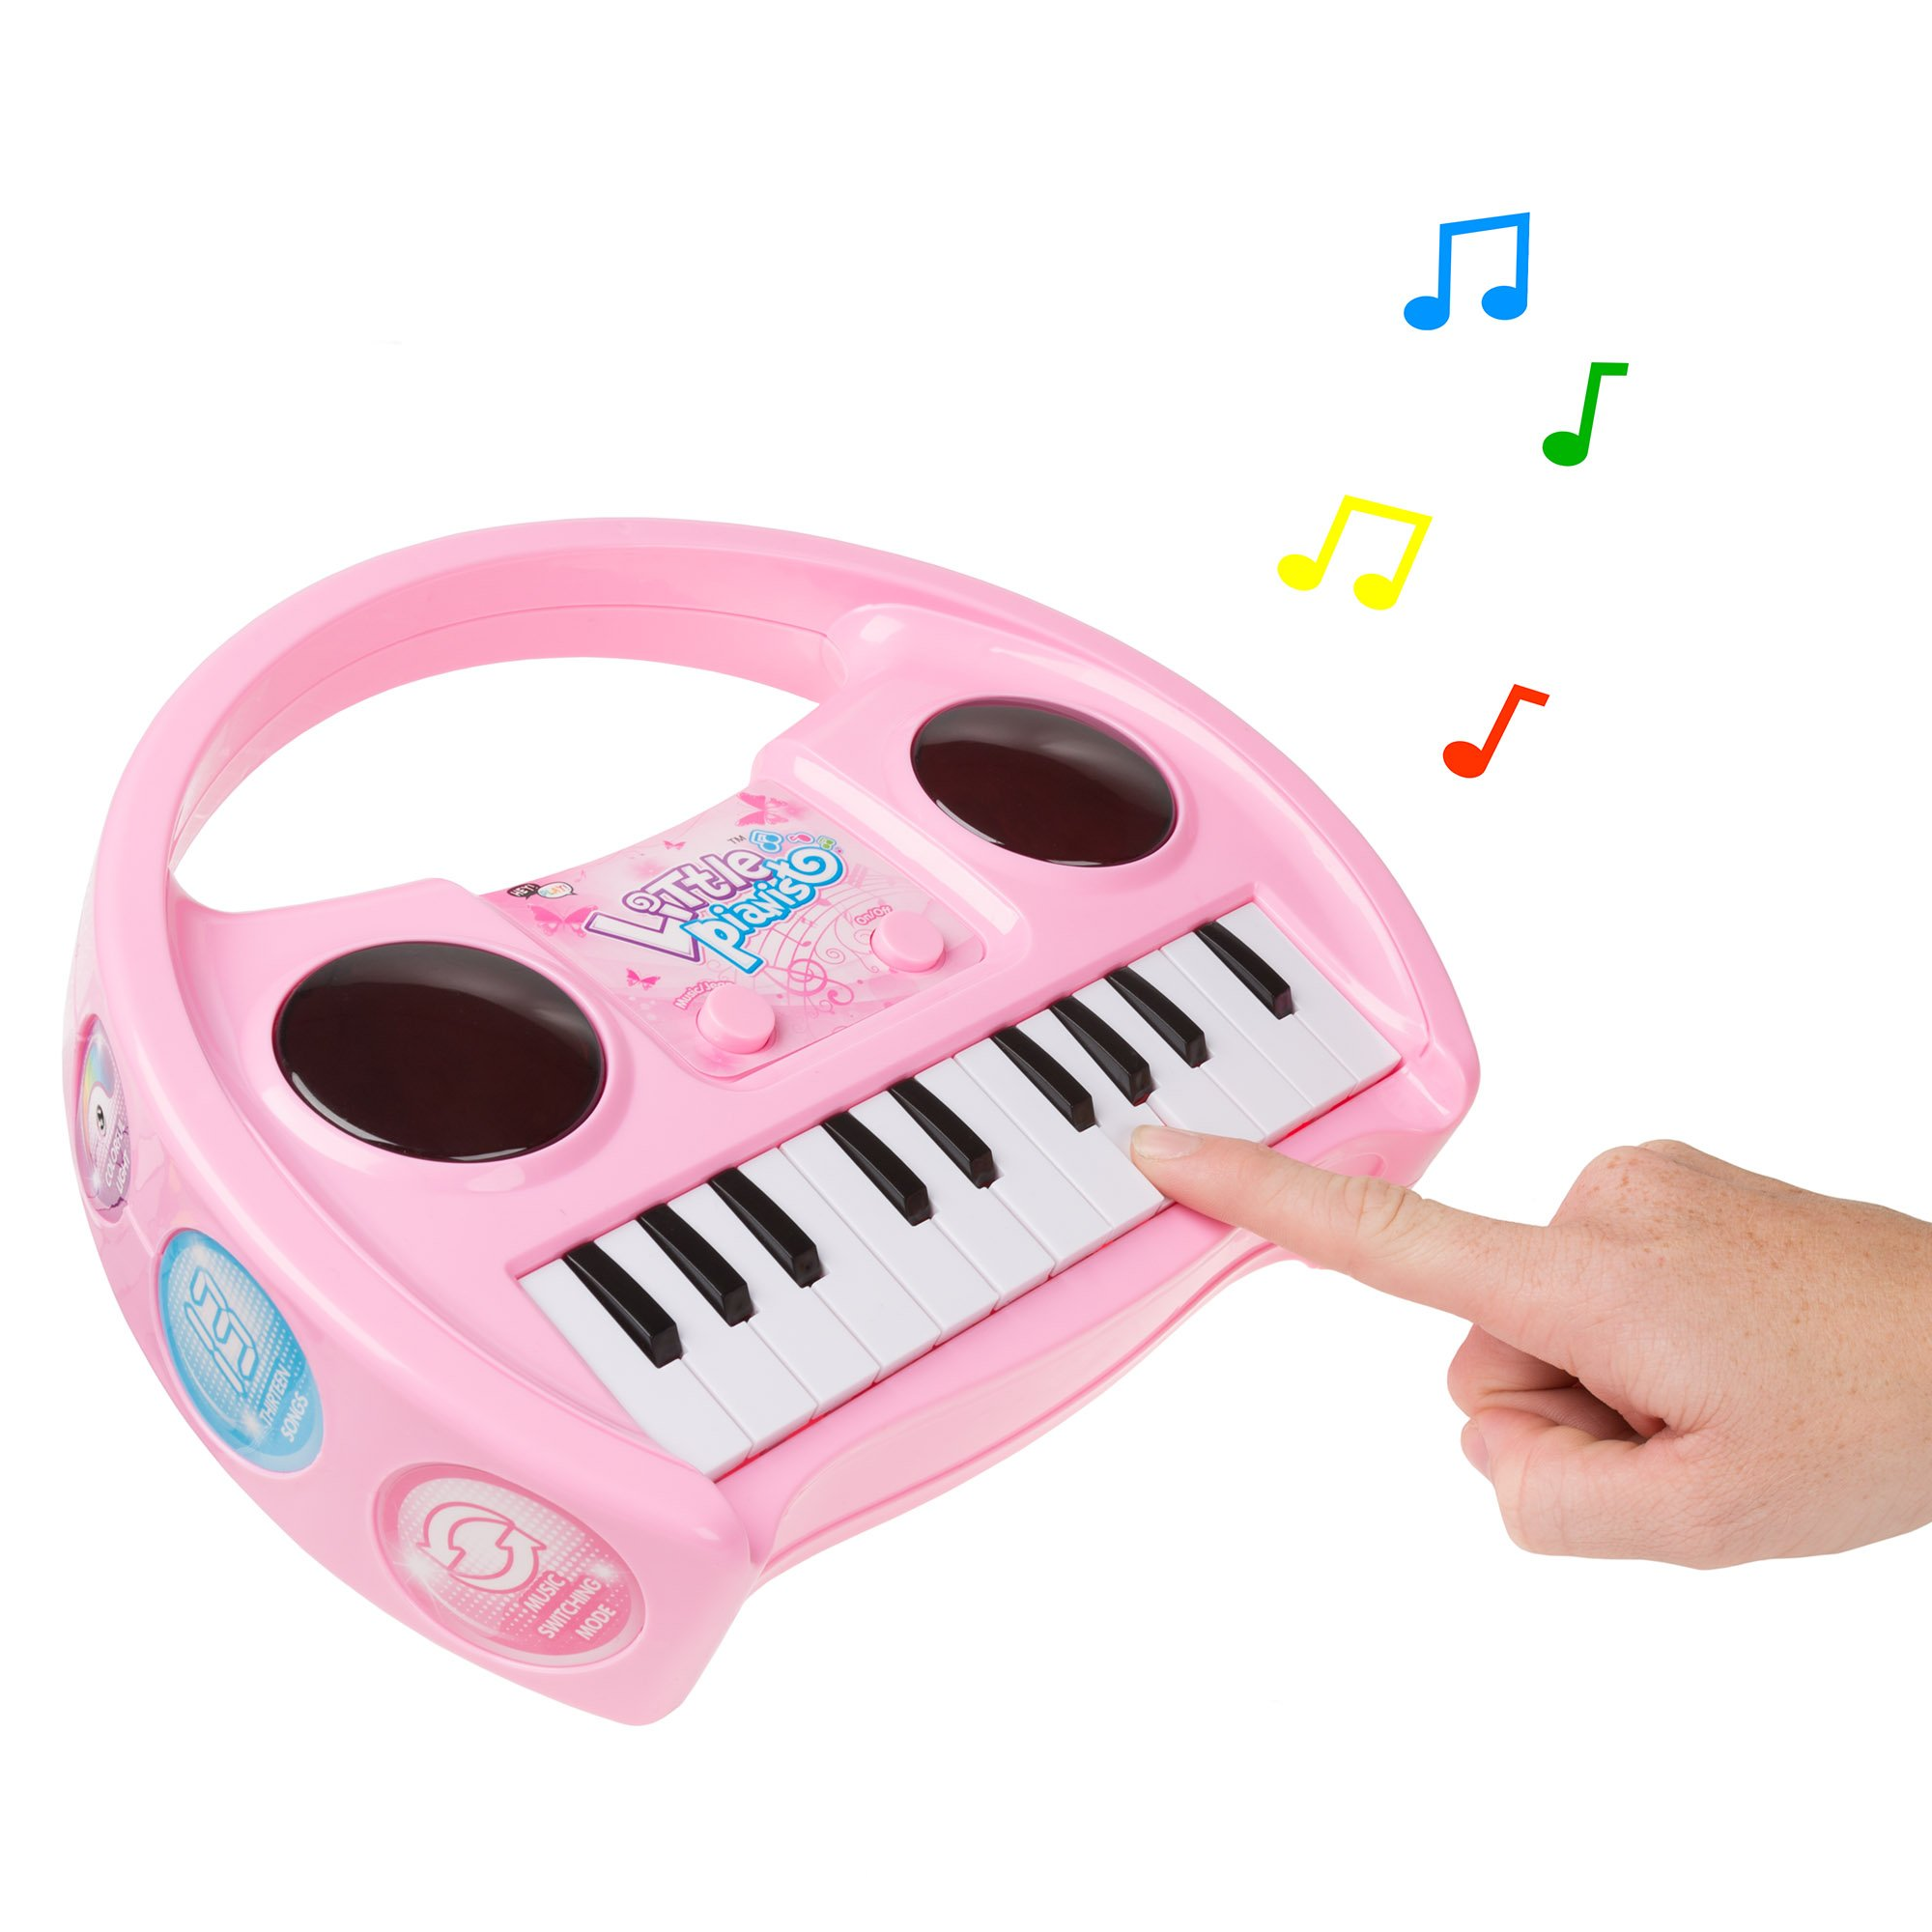 Kids Karaoke Machine with Microphone, Includes Musical Keyboard & Lights - Battery Operated Portable Singing Machine for Boys and Girls by Hey! Play! by Hey!Play! (Image #3)